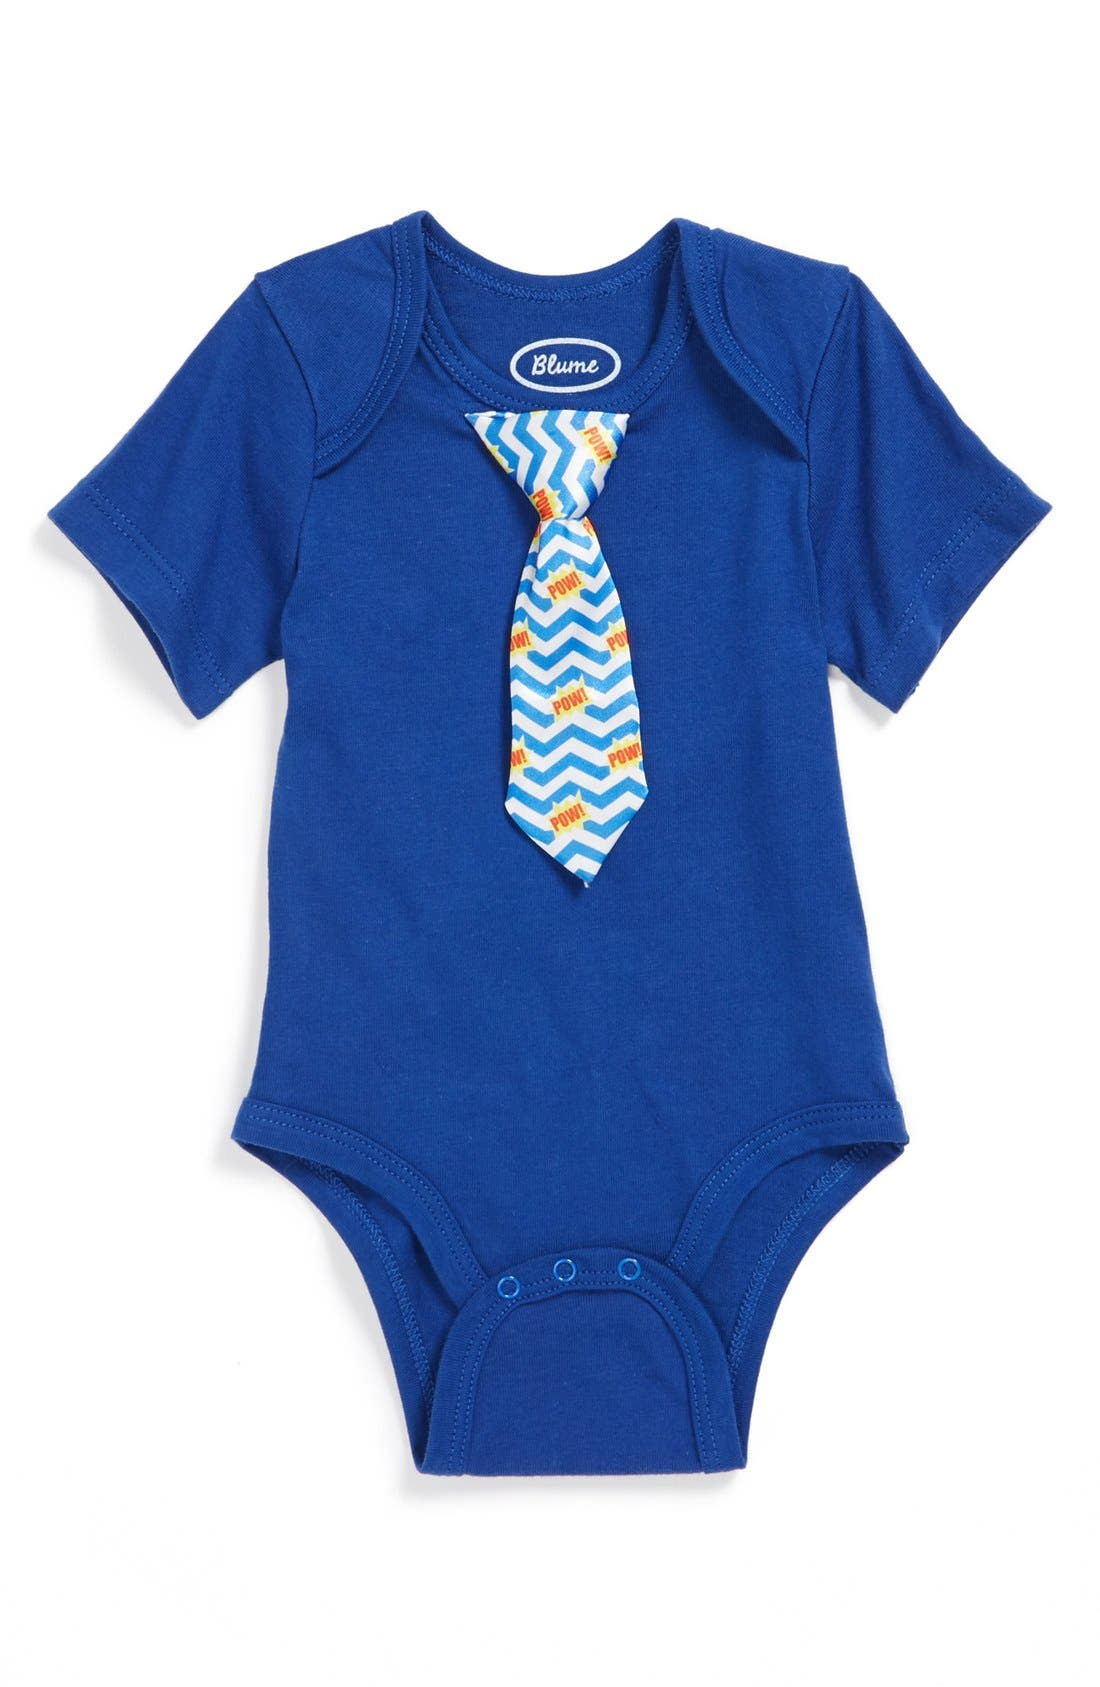 Alternate Image 1 Selected - Blume 'Tie' Bodysuit (Baby Boys)